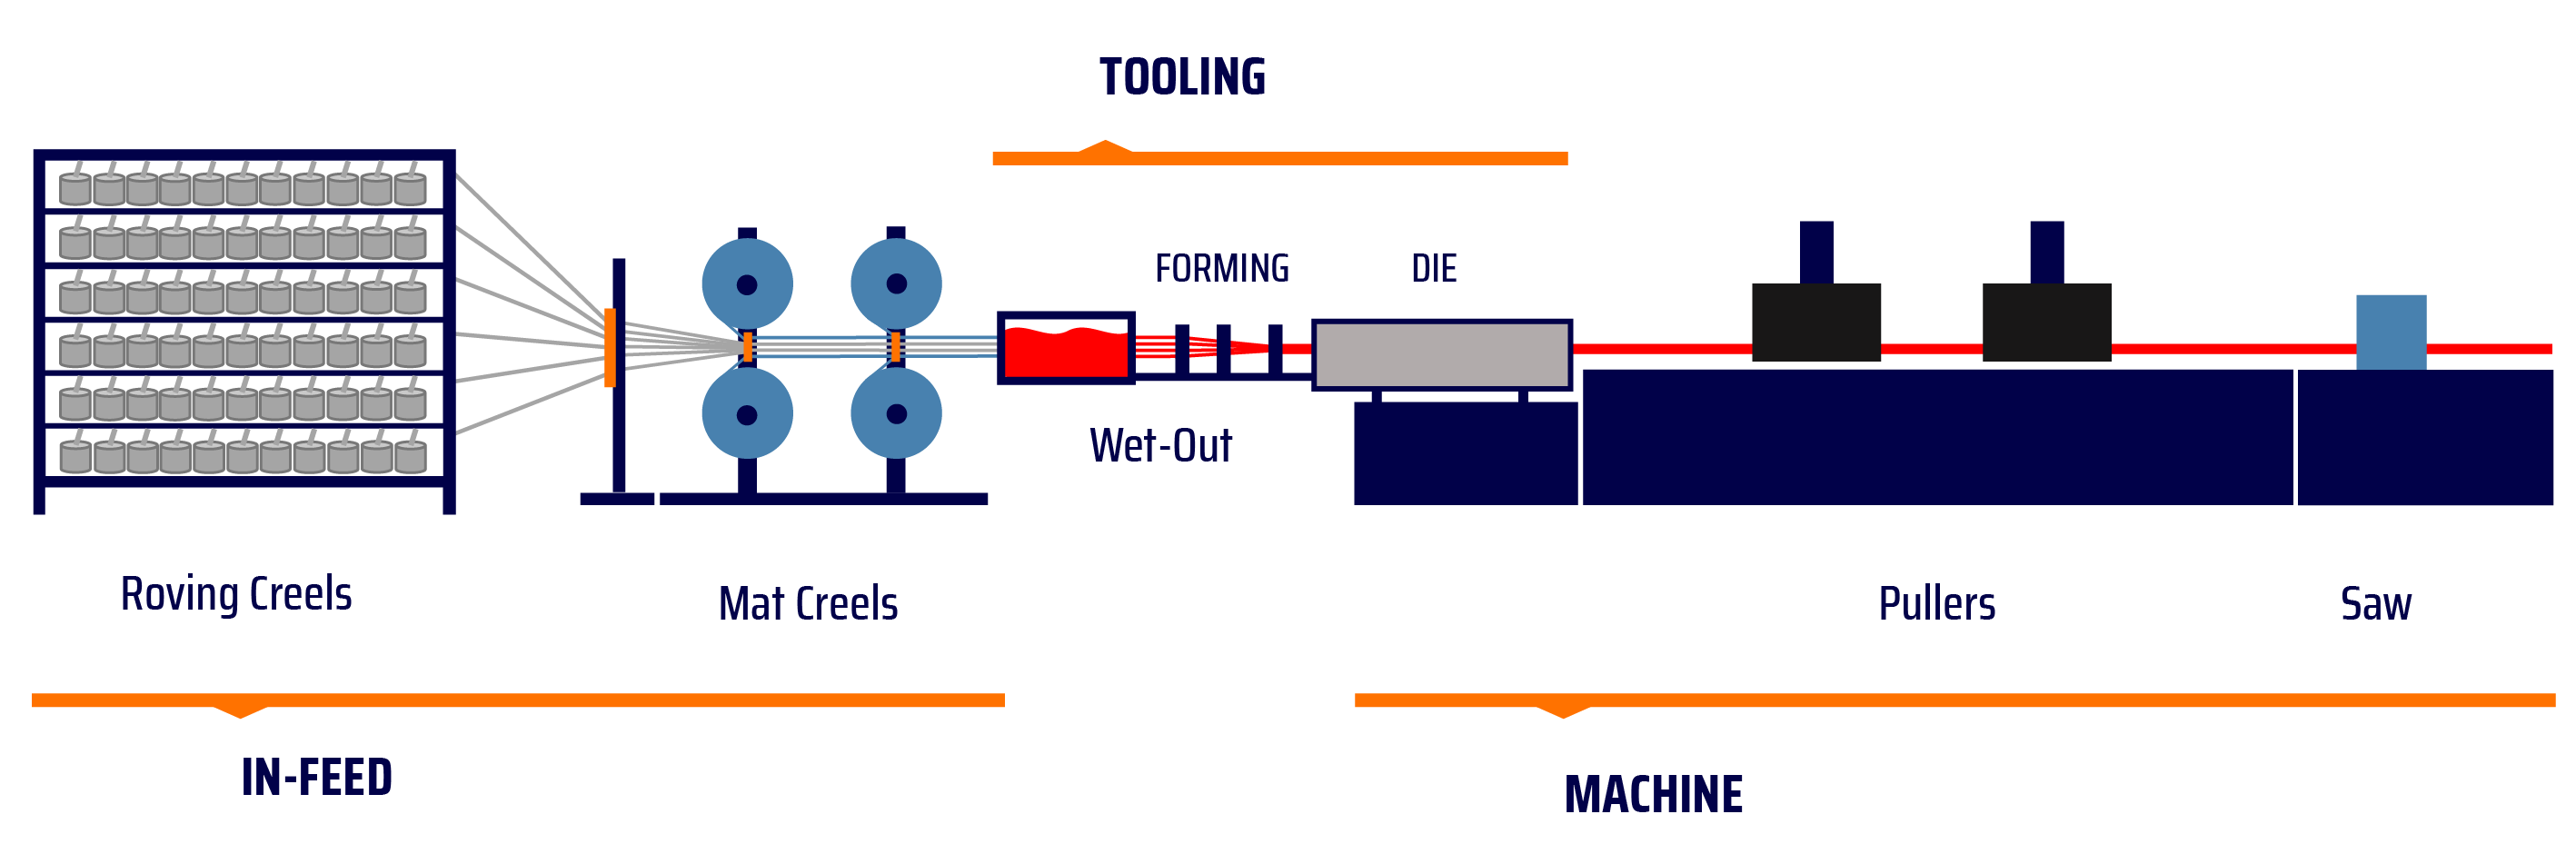 THE PULTRUSION PROCESS